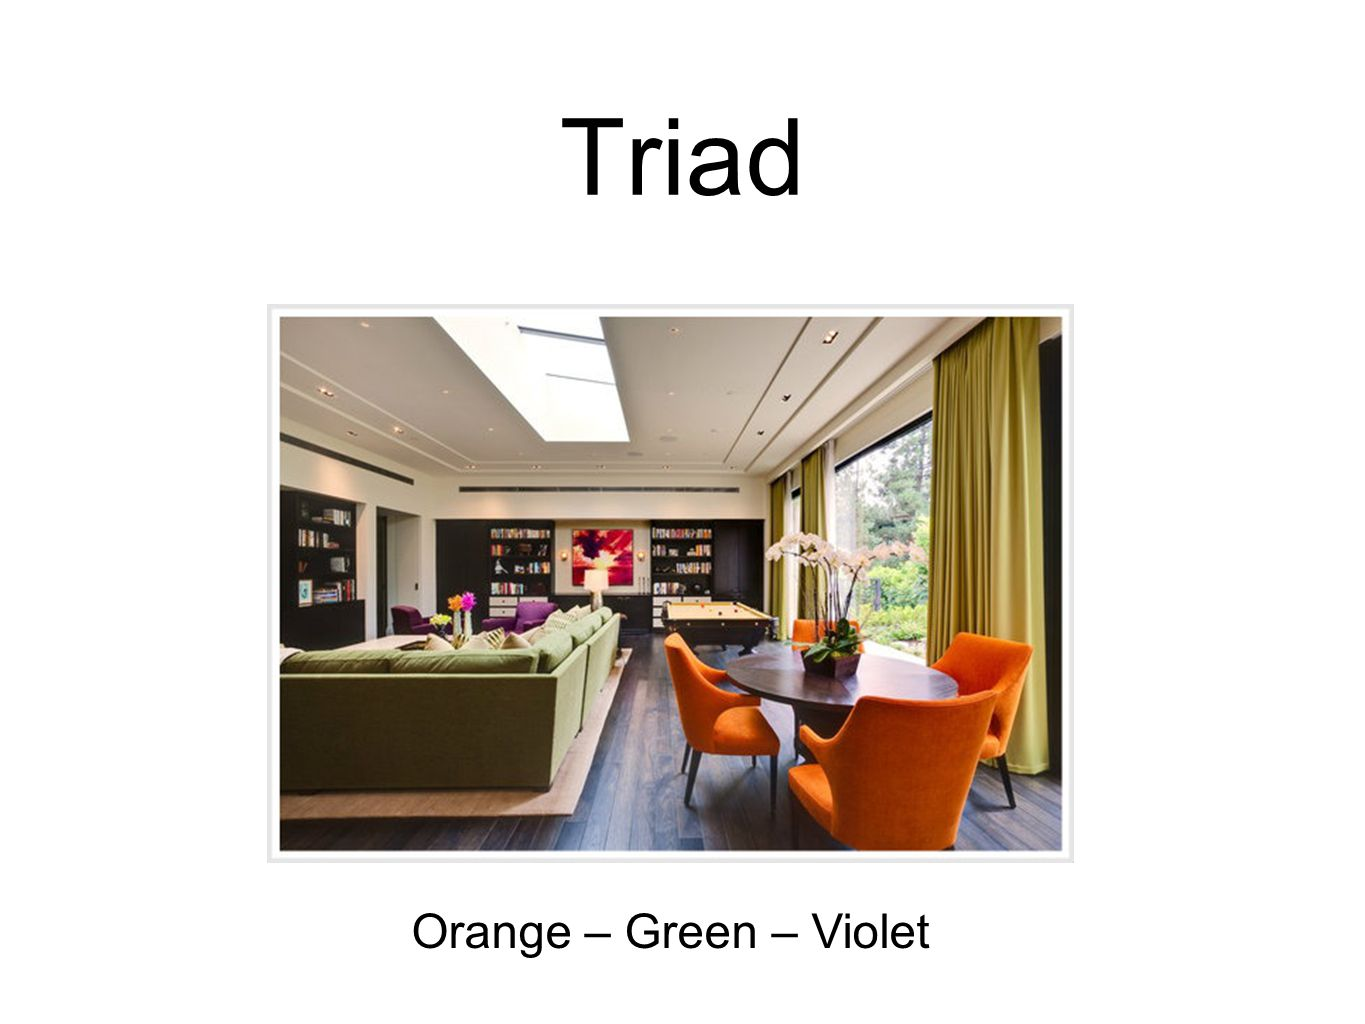 Triad Orange – Green – Violet